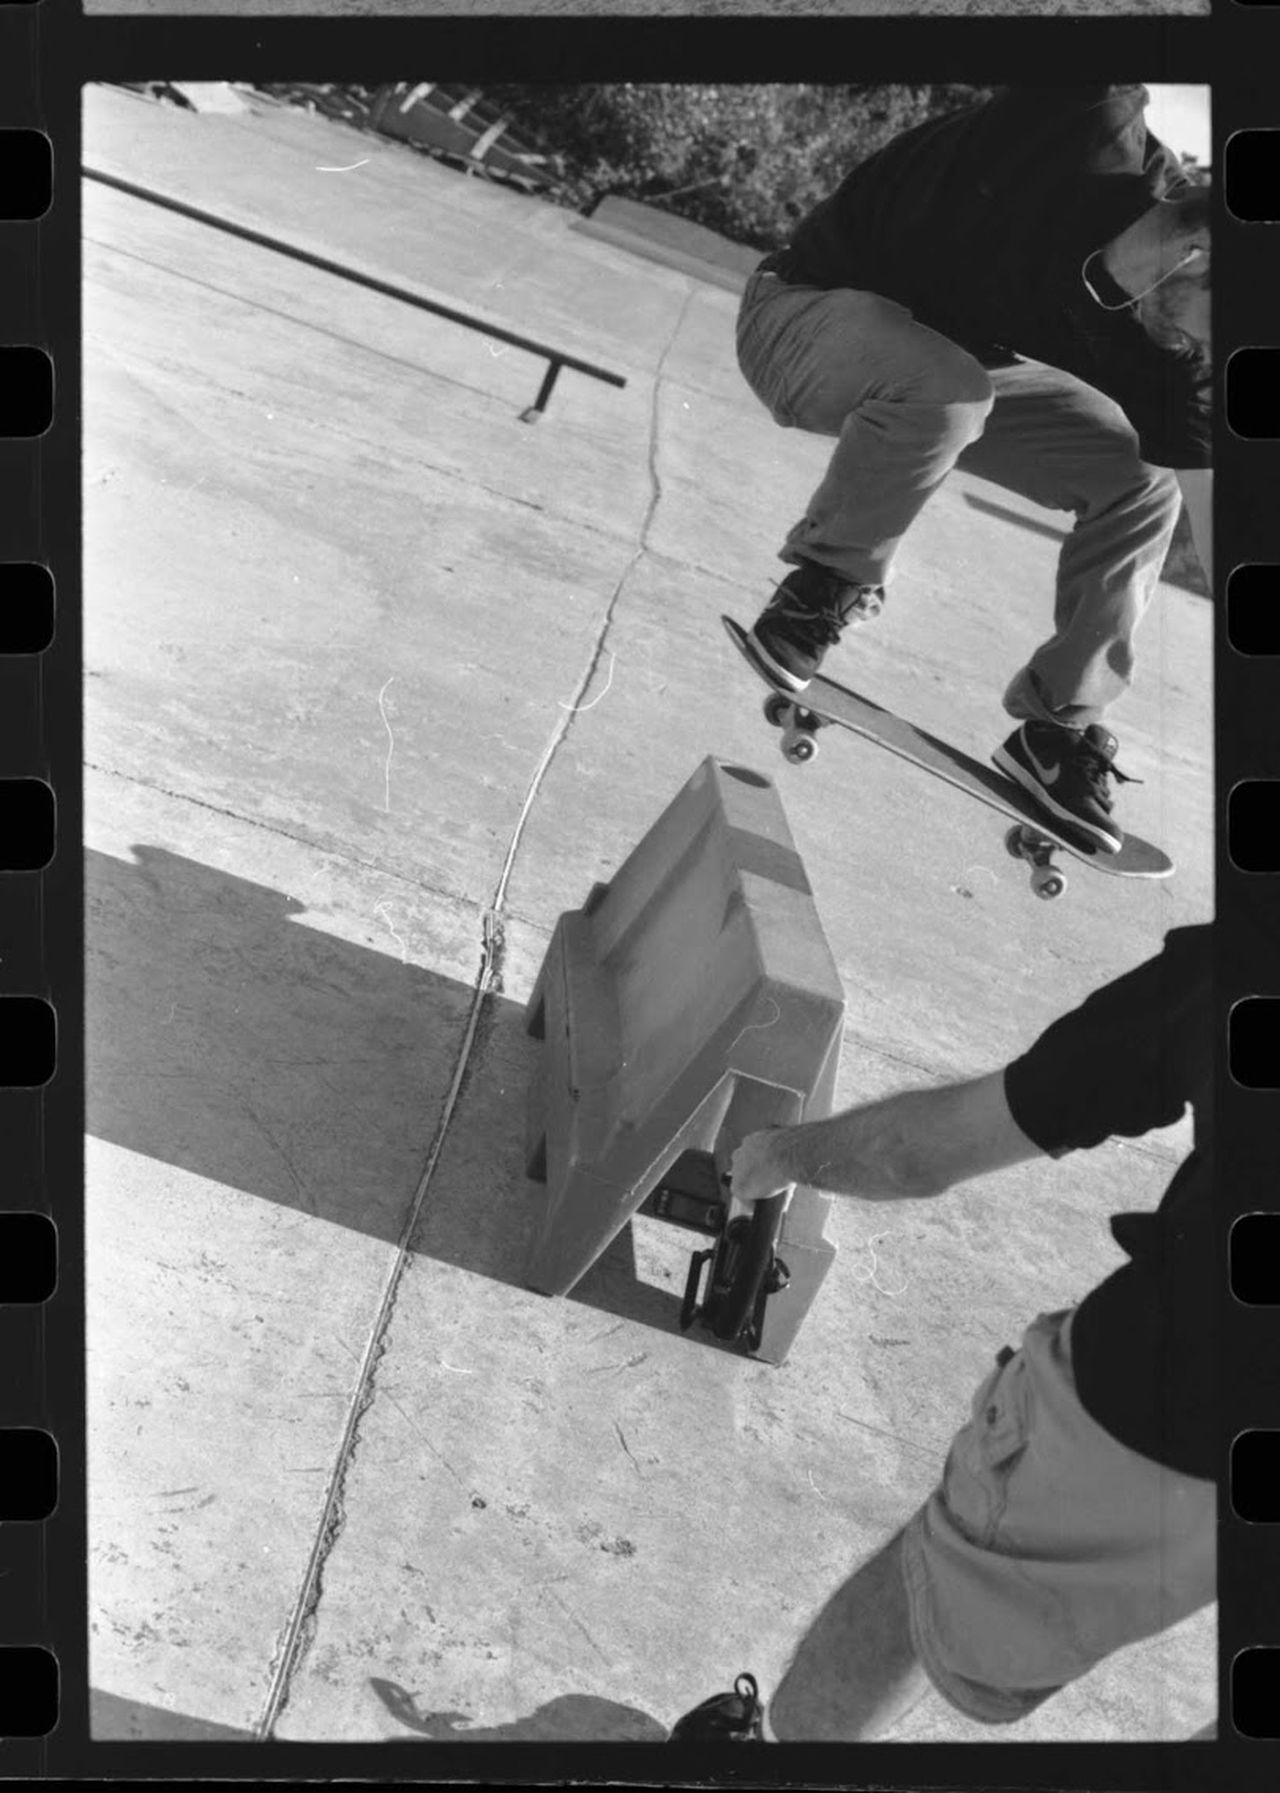 Capturing Movement Skate Life Skateboarding Skateboard Monochrome Black And White 35mm Film Skater Skateuk Canonphotography